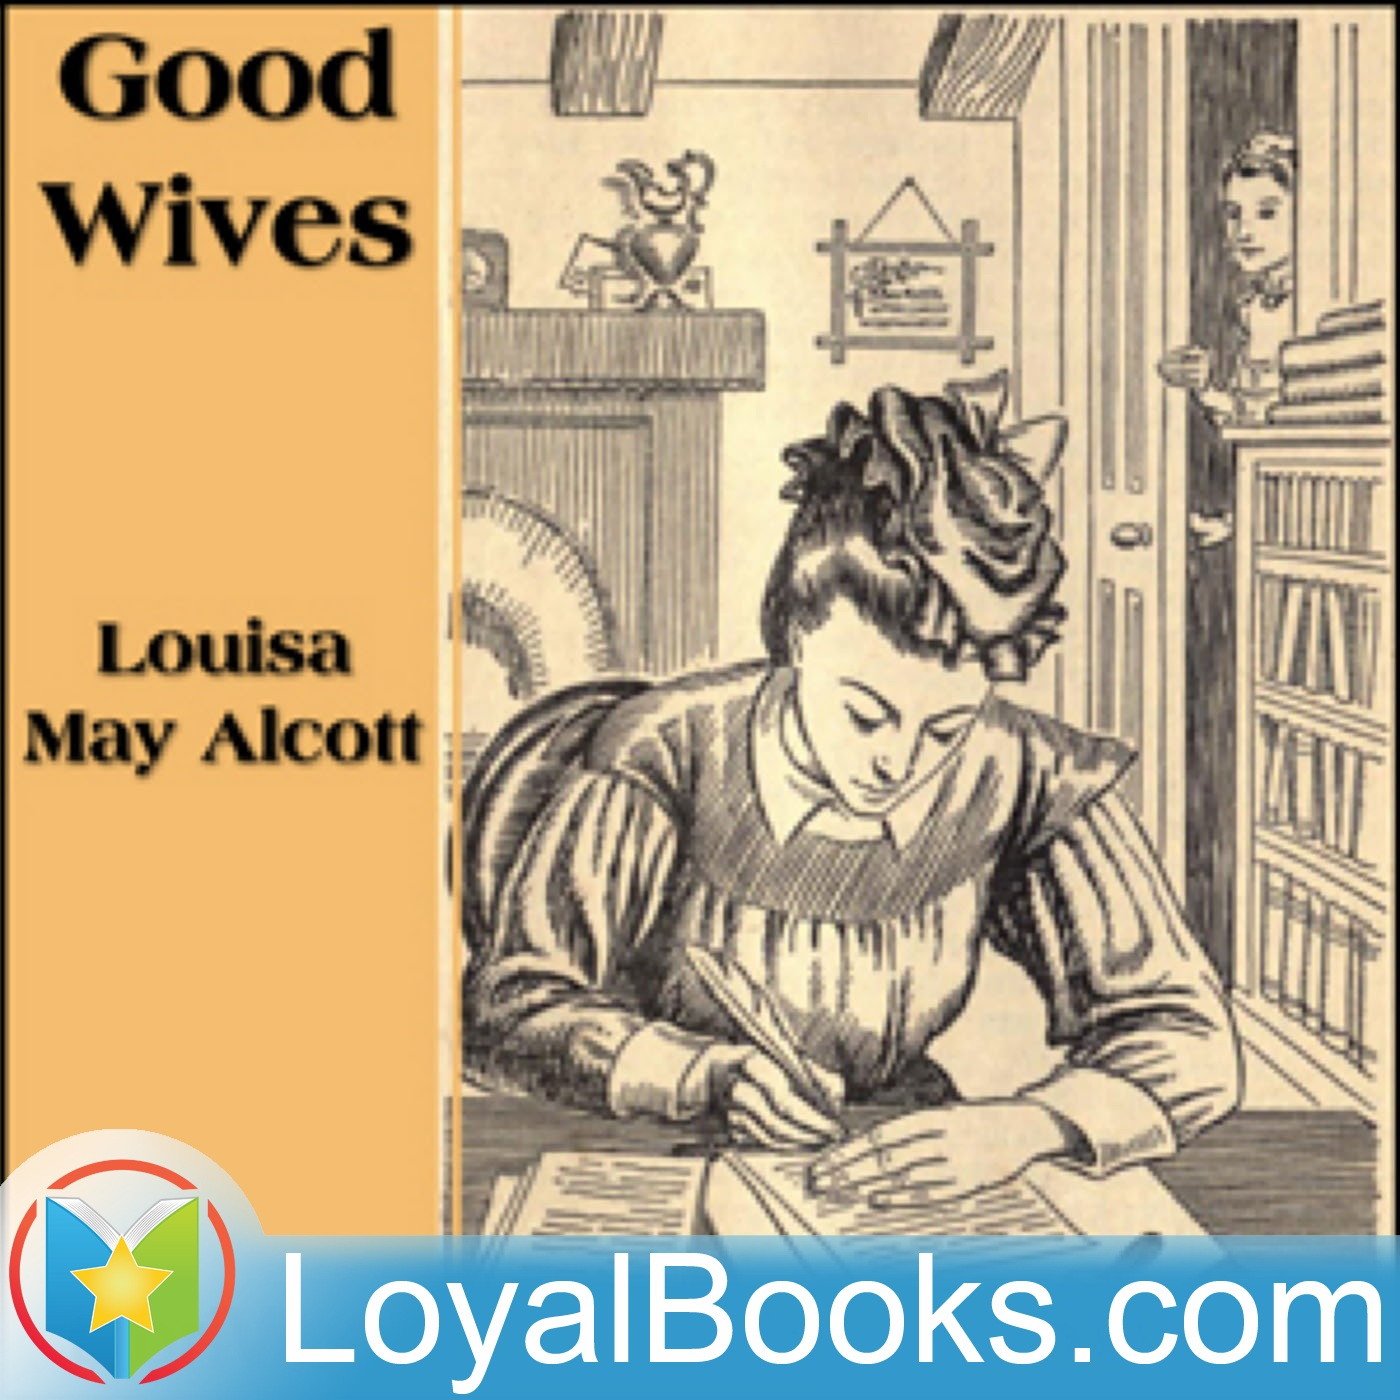 <![CDATA[Good Wives by Louisa May Alcott]]>